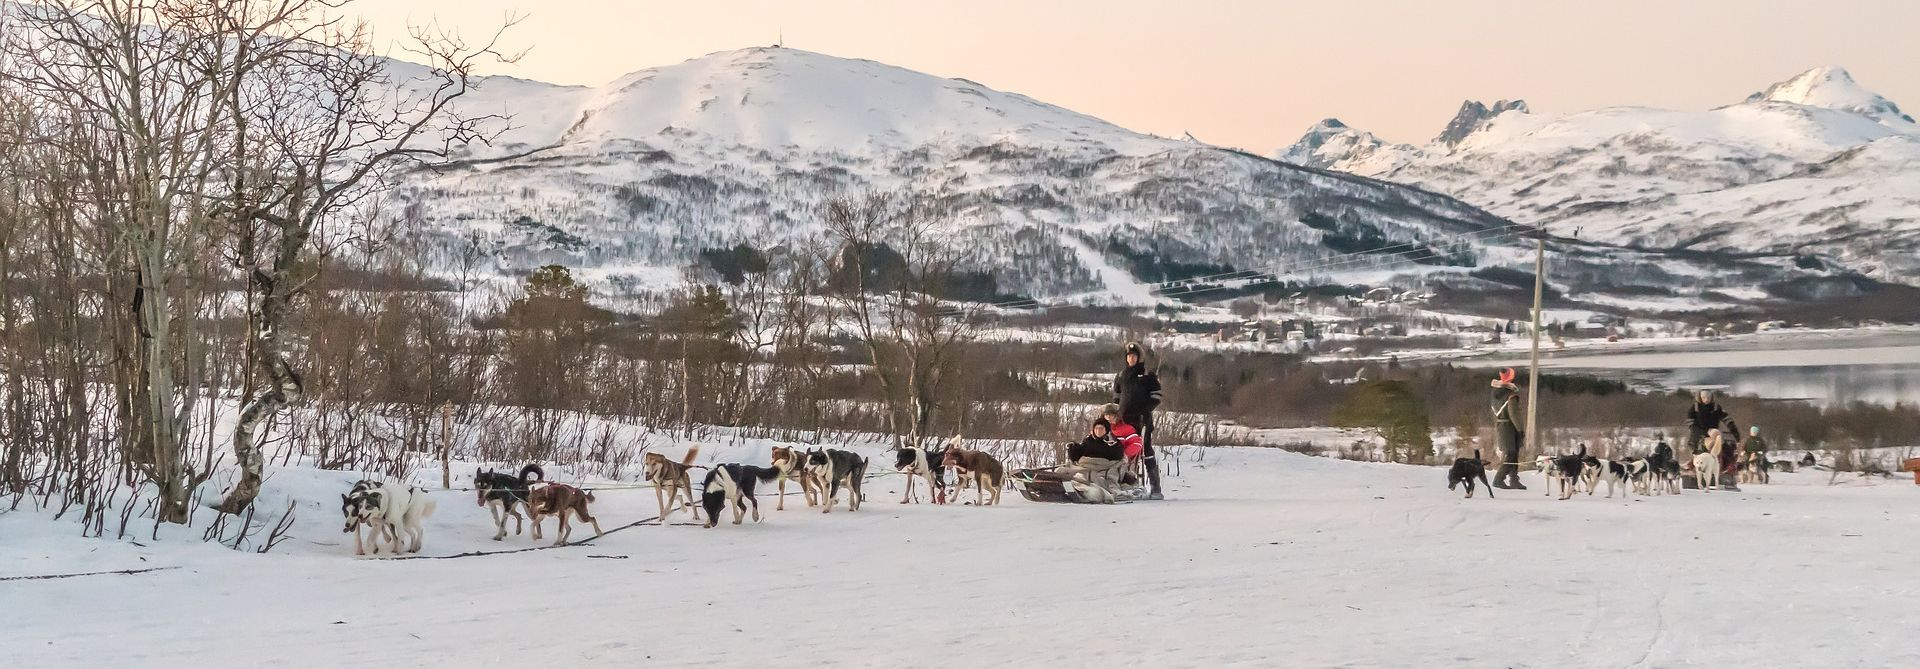 Dog Sledding, Lapland